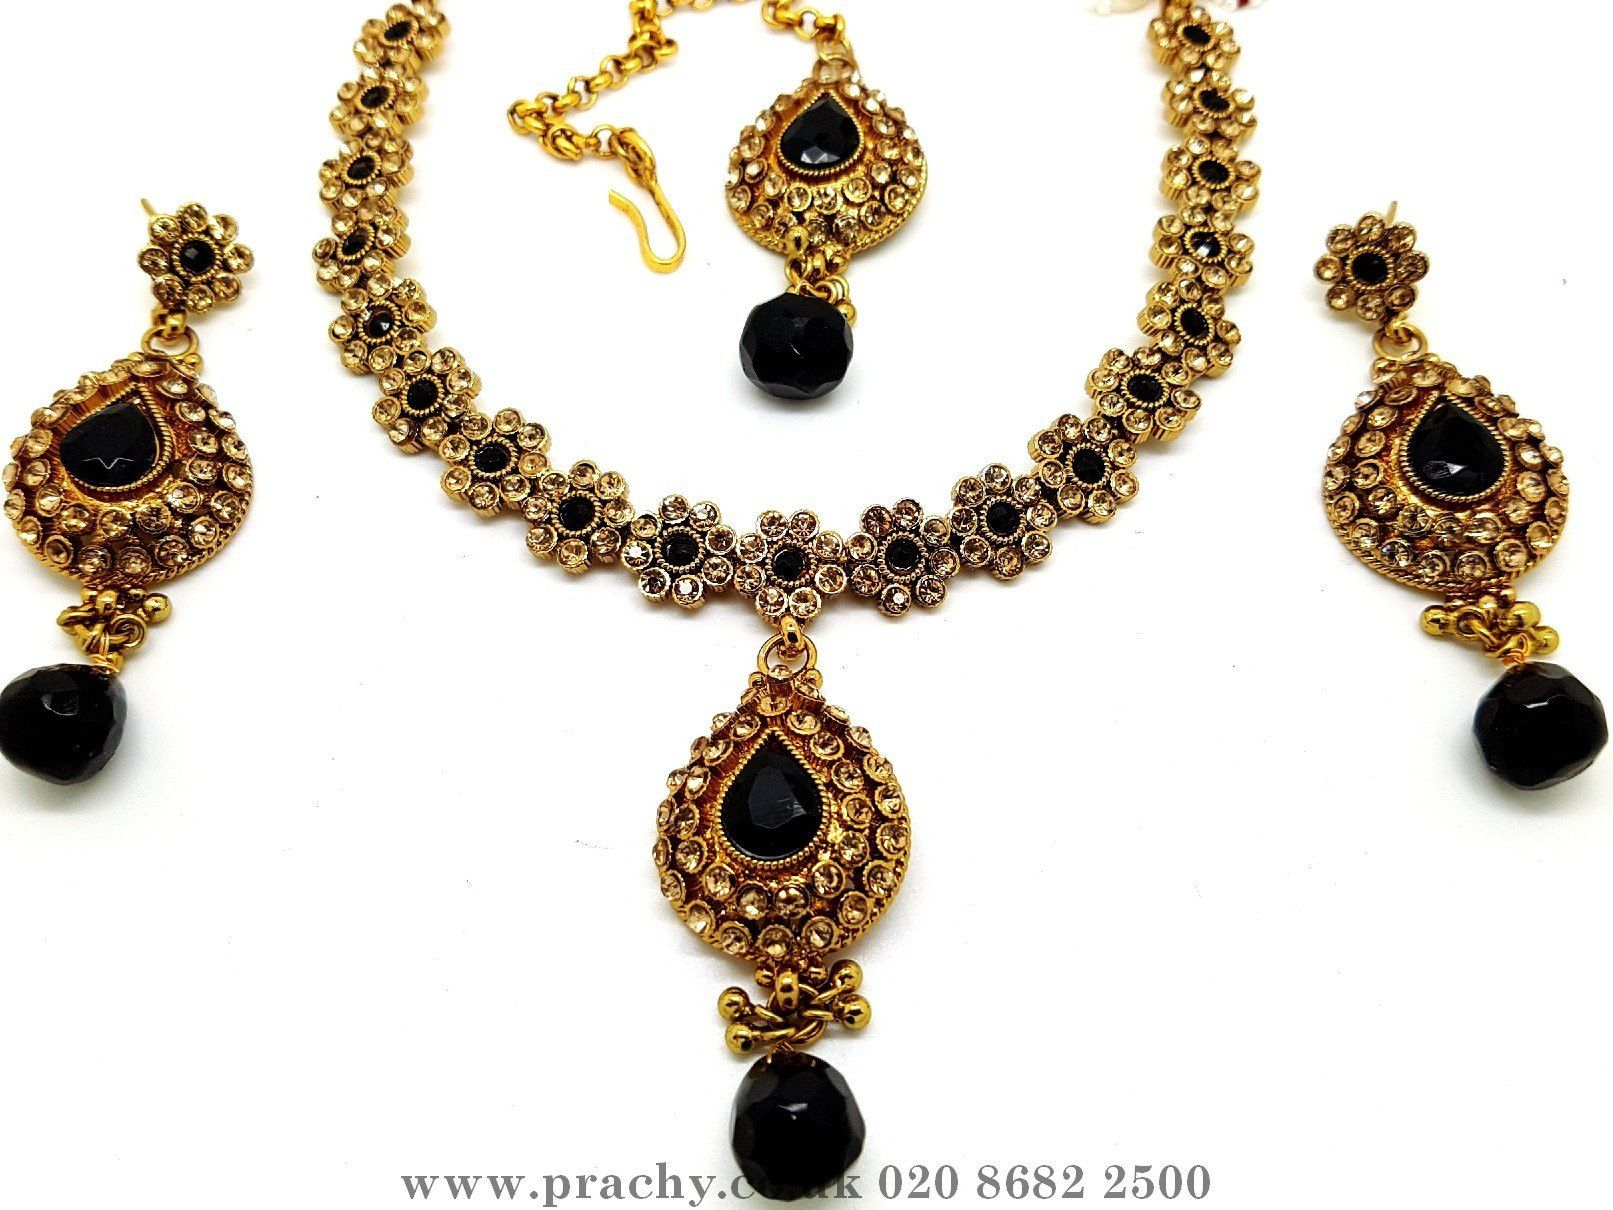 earrings gold pretty jewellery necklace fashion plated pin jewelry set indian